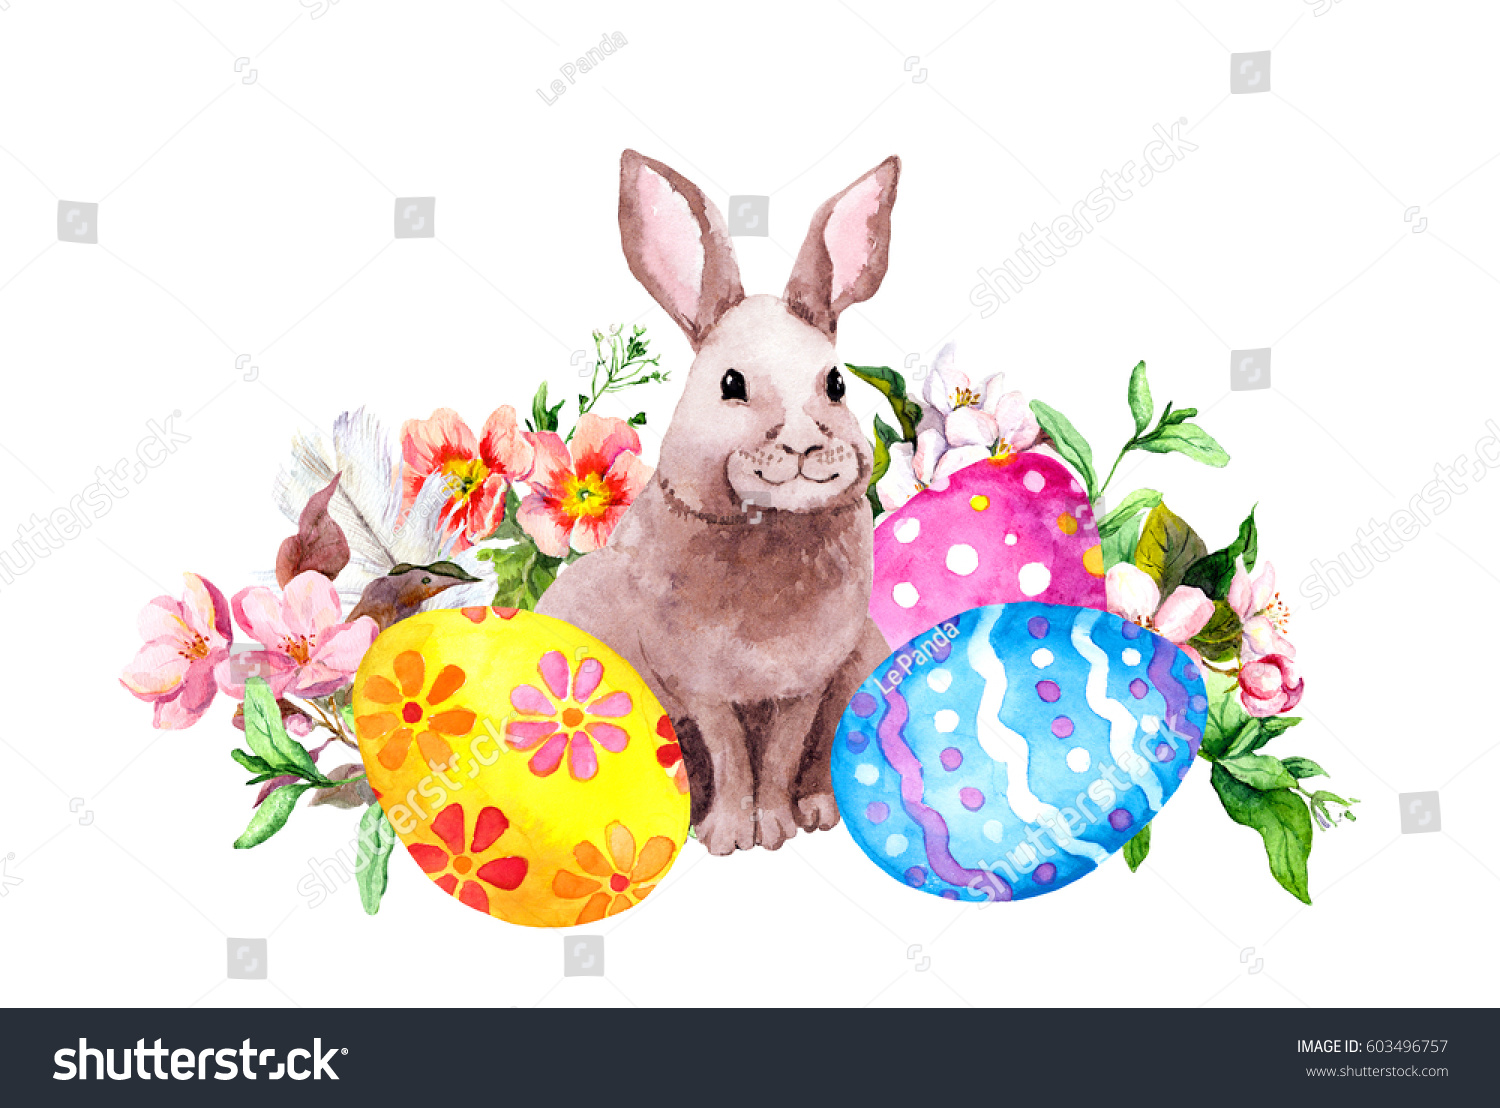 easter bunny colored eggs grass pink stock illustration 603496757